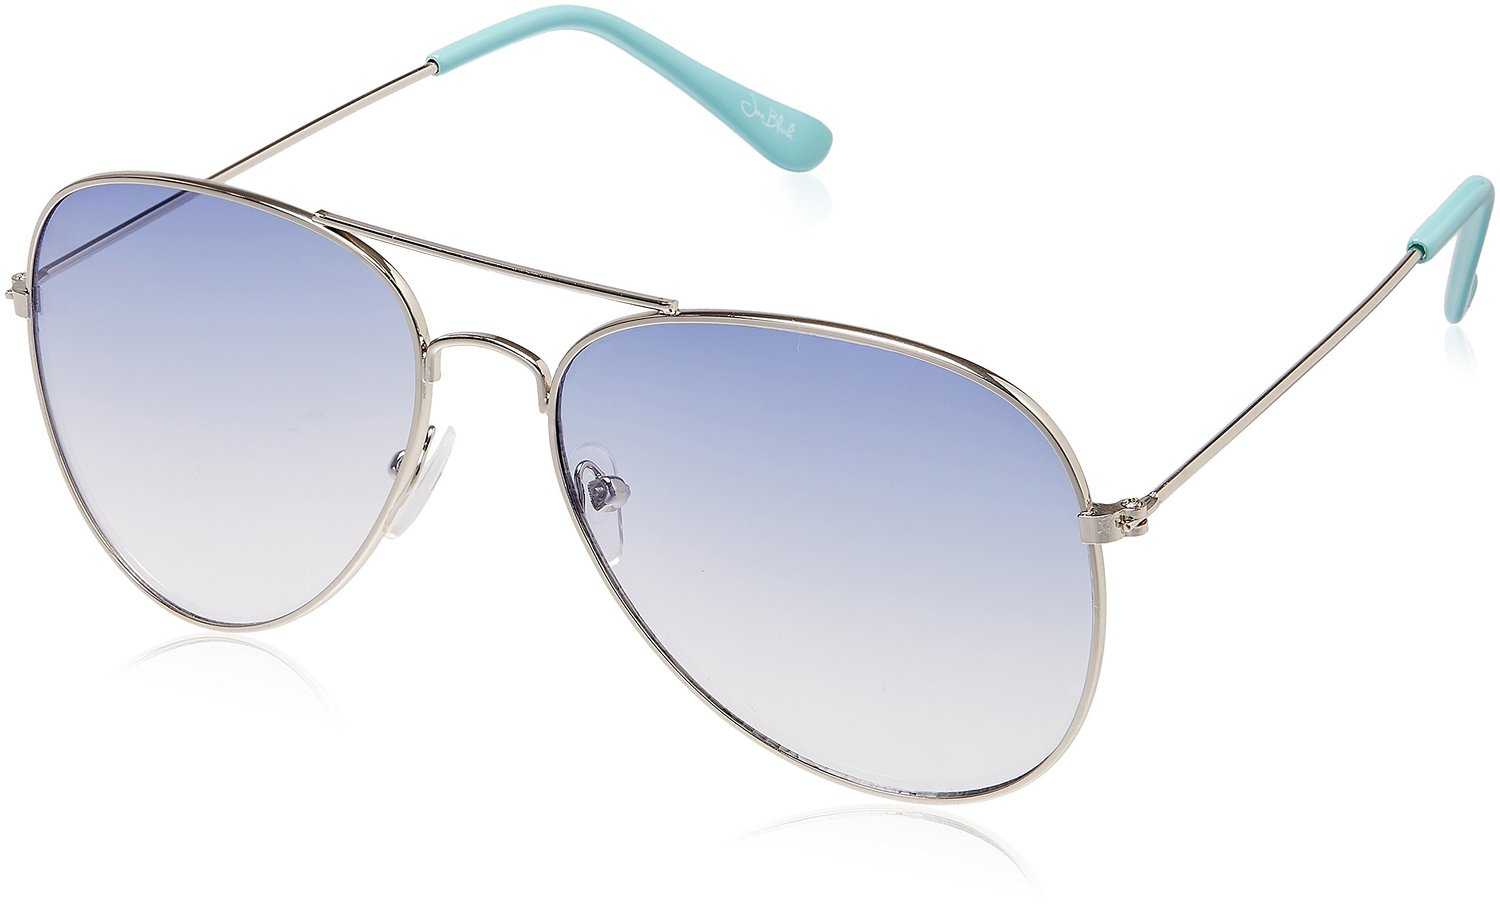 Joe Black, Aviator Sunglasses